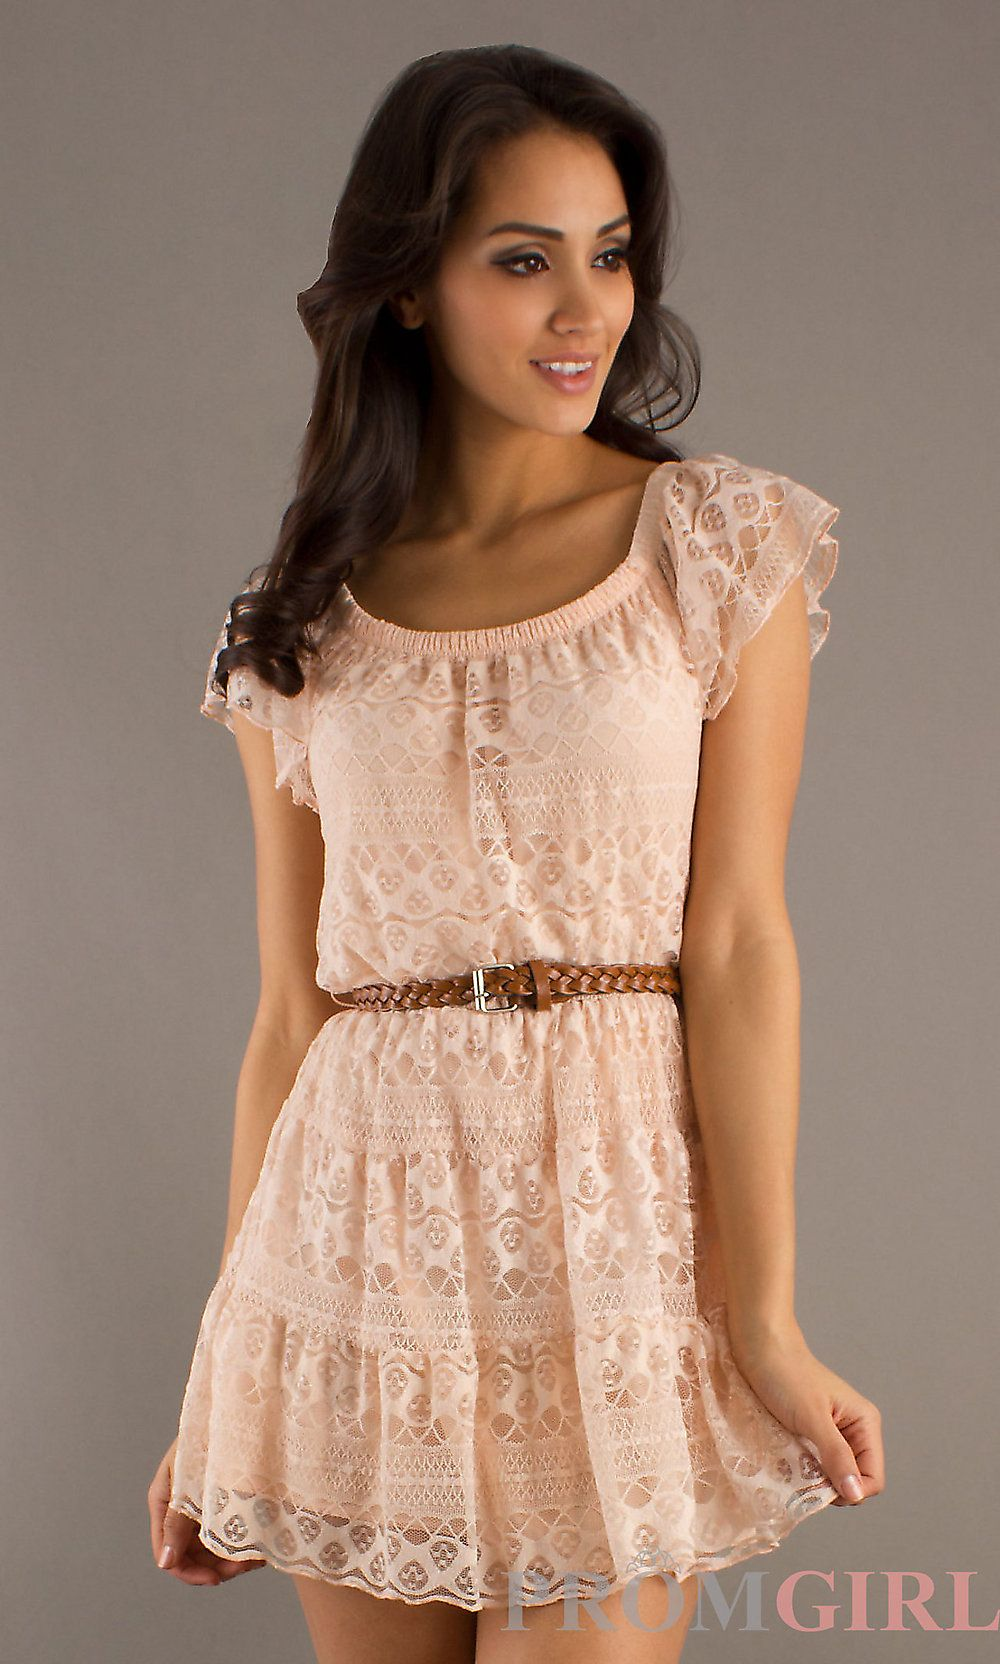 Pink short dress casual  Short Lace Dresses Casual Dresses Pink Short Dress PromGirl